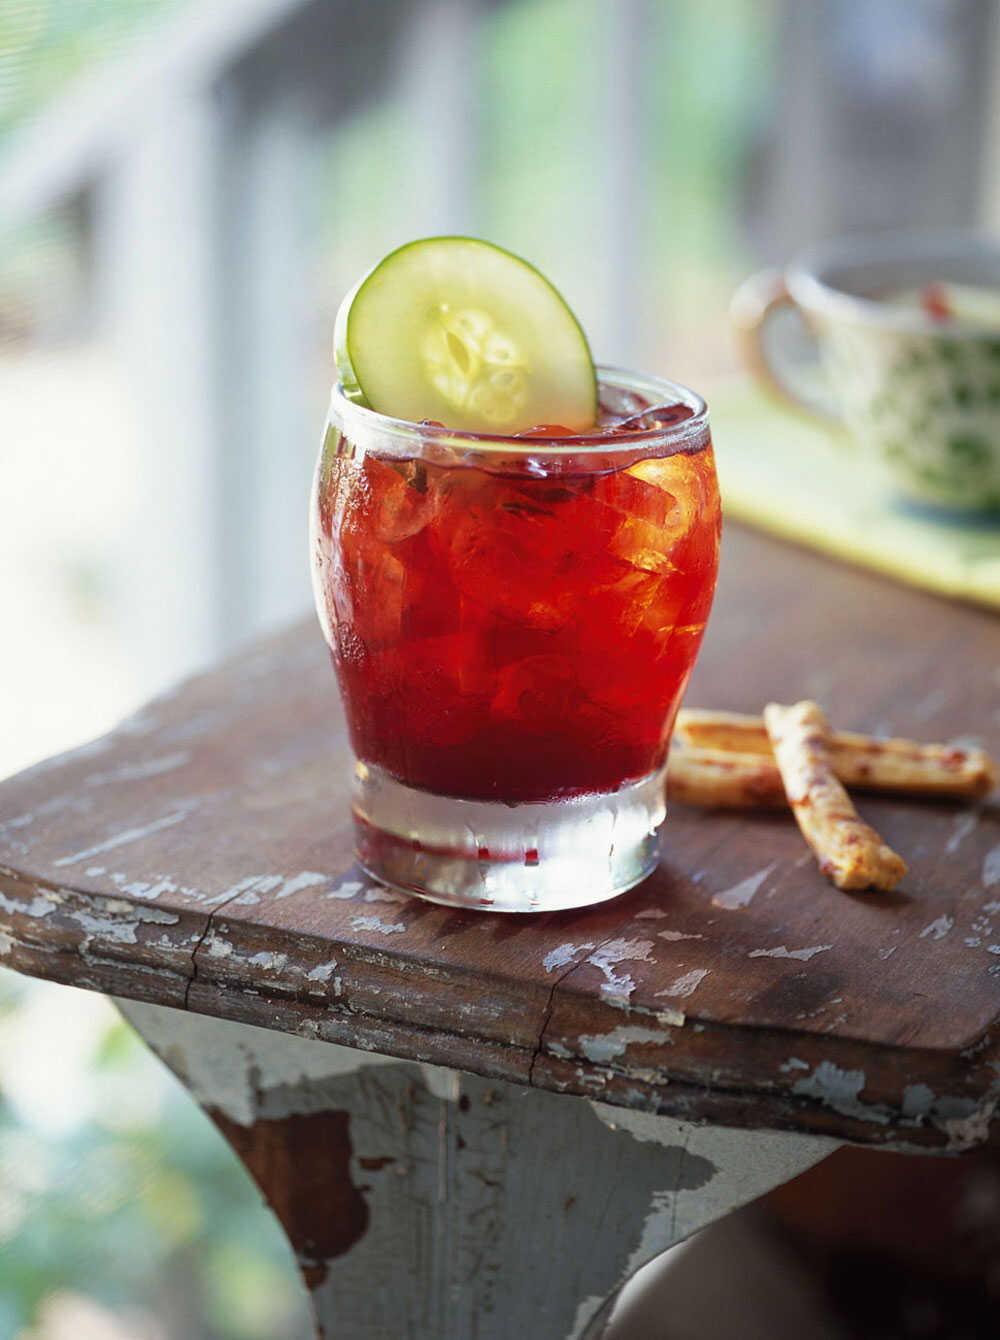 Pomegranate Pimm's Cup